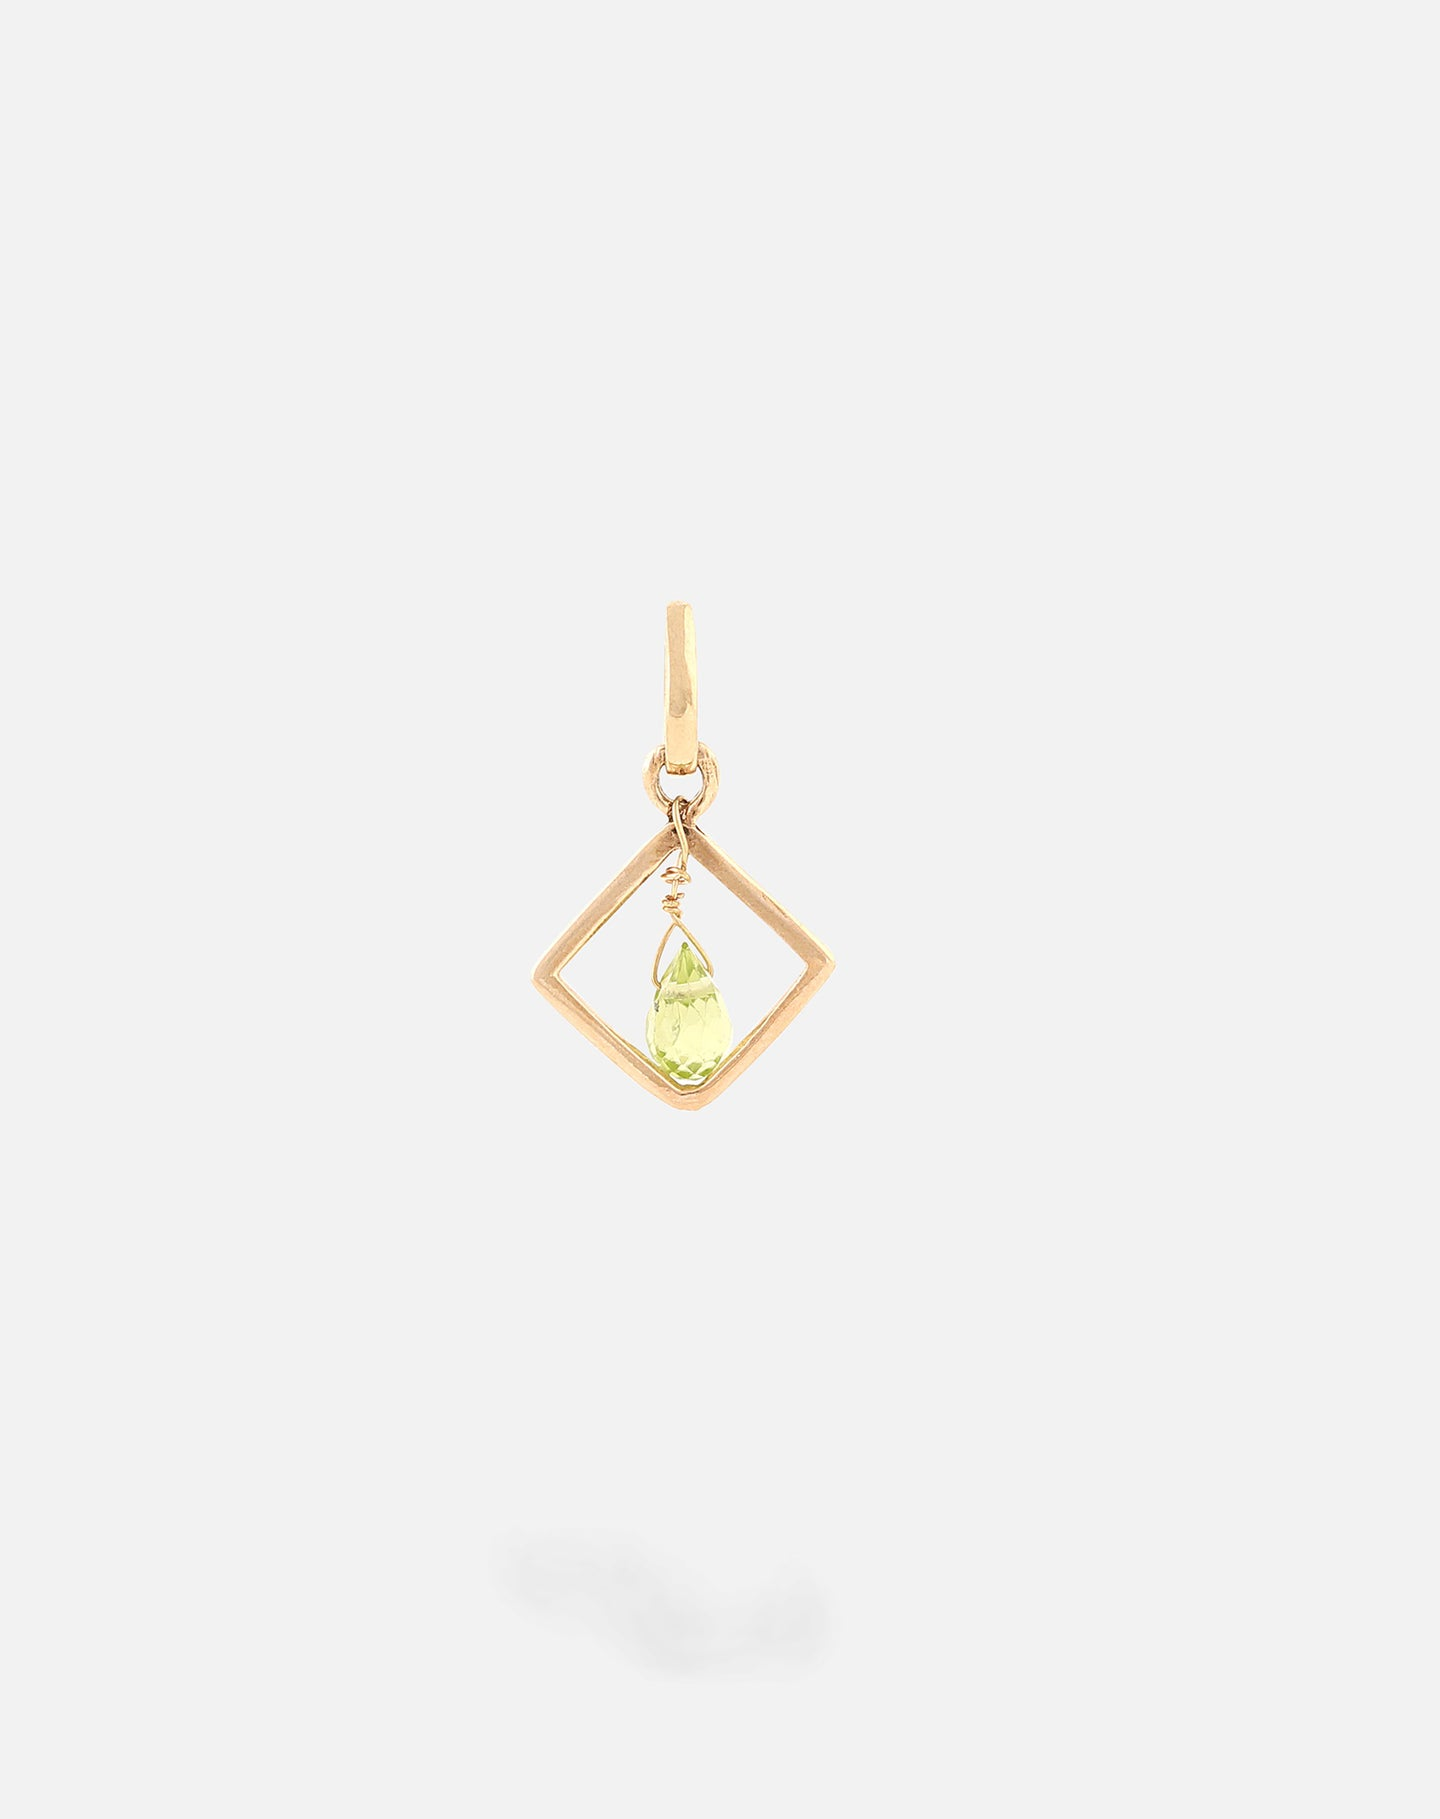 Gold Colored Stone Motivation Charm Periodot